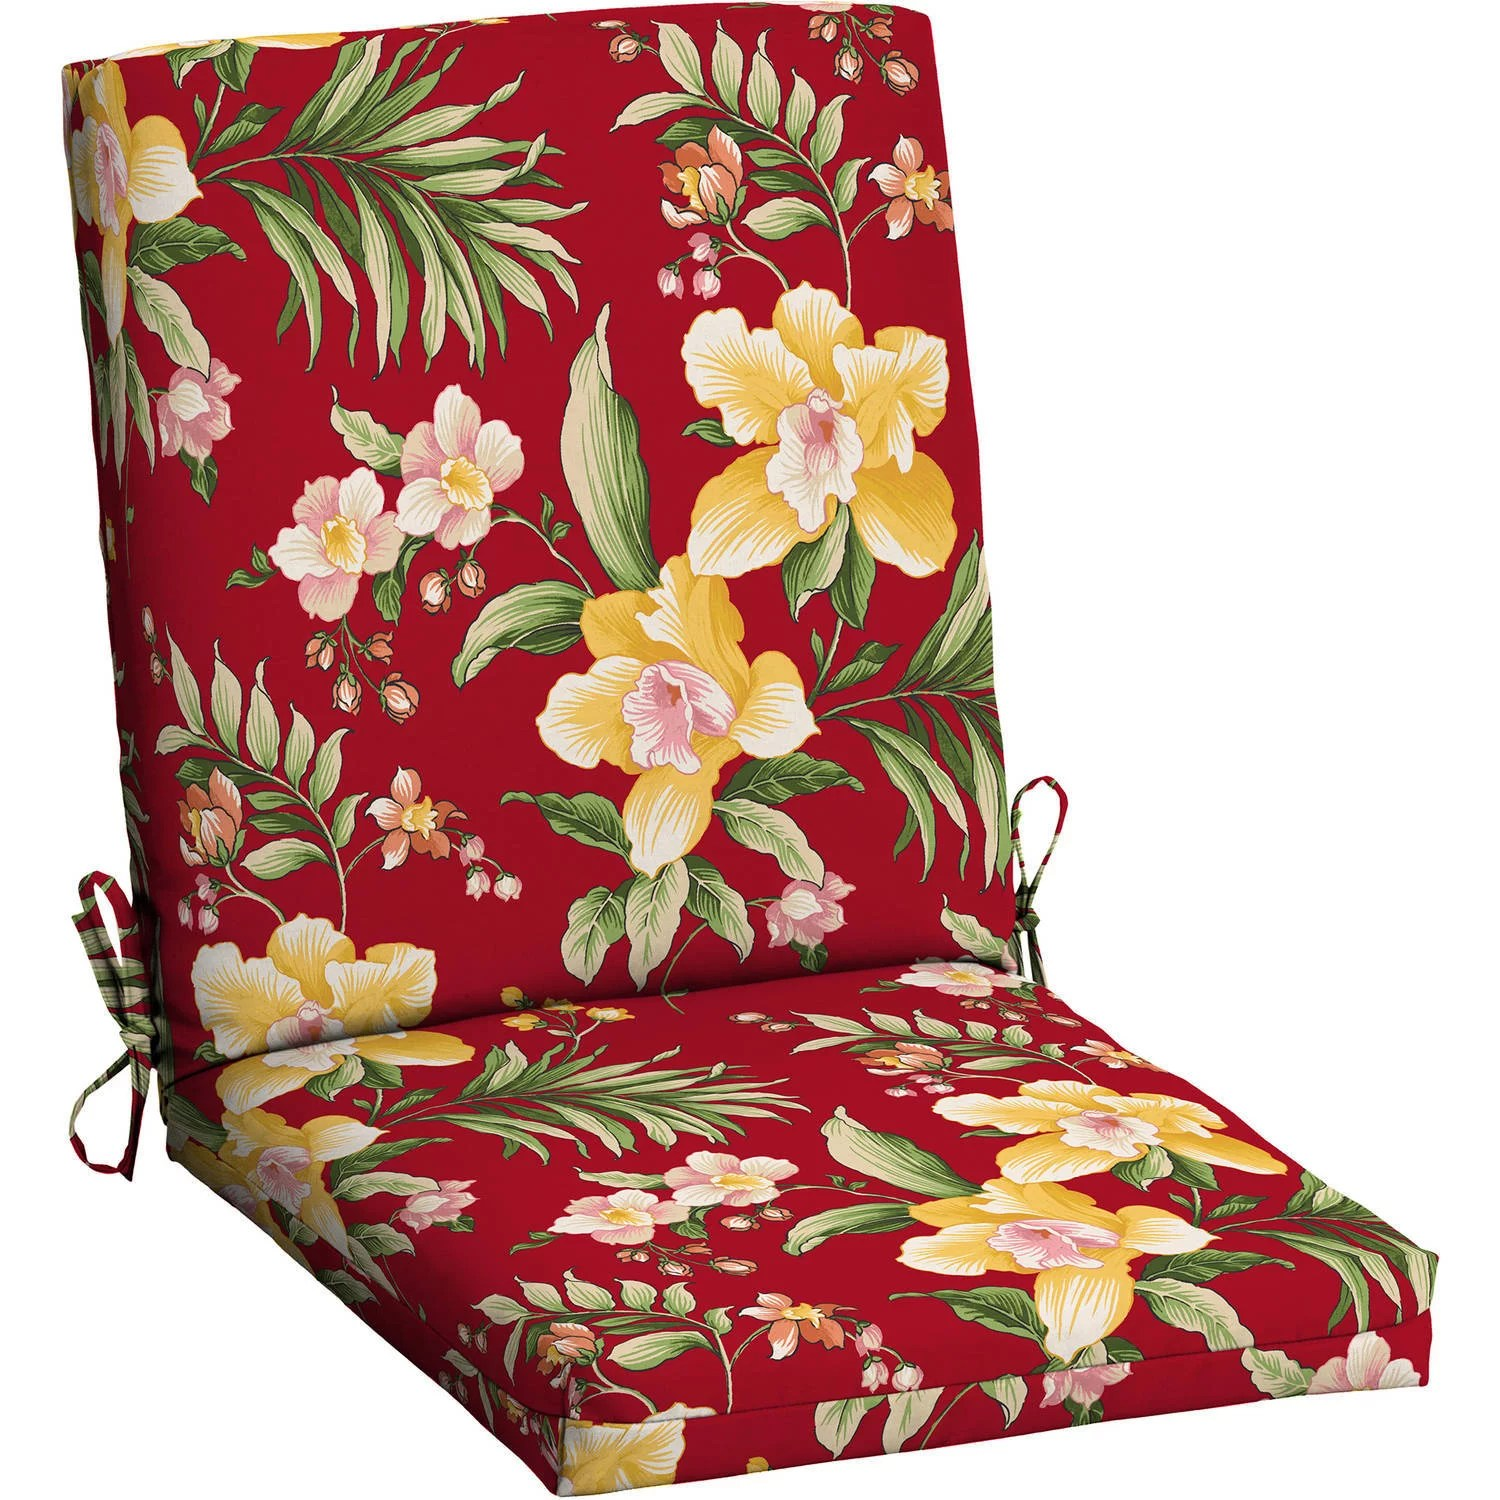 Patio Chair Replacement Cushions Mainstays Outdoor Patio Dining Chair Cushion Red Tropical